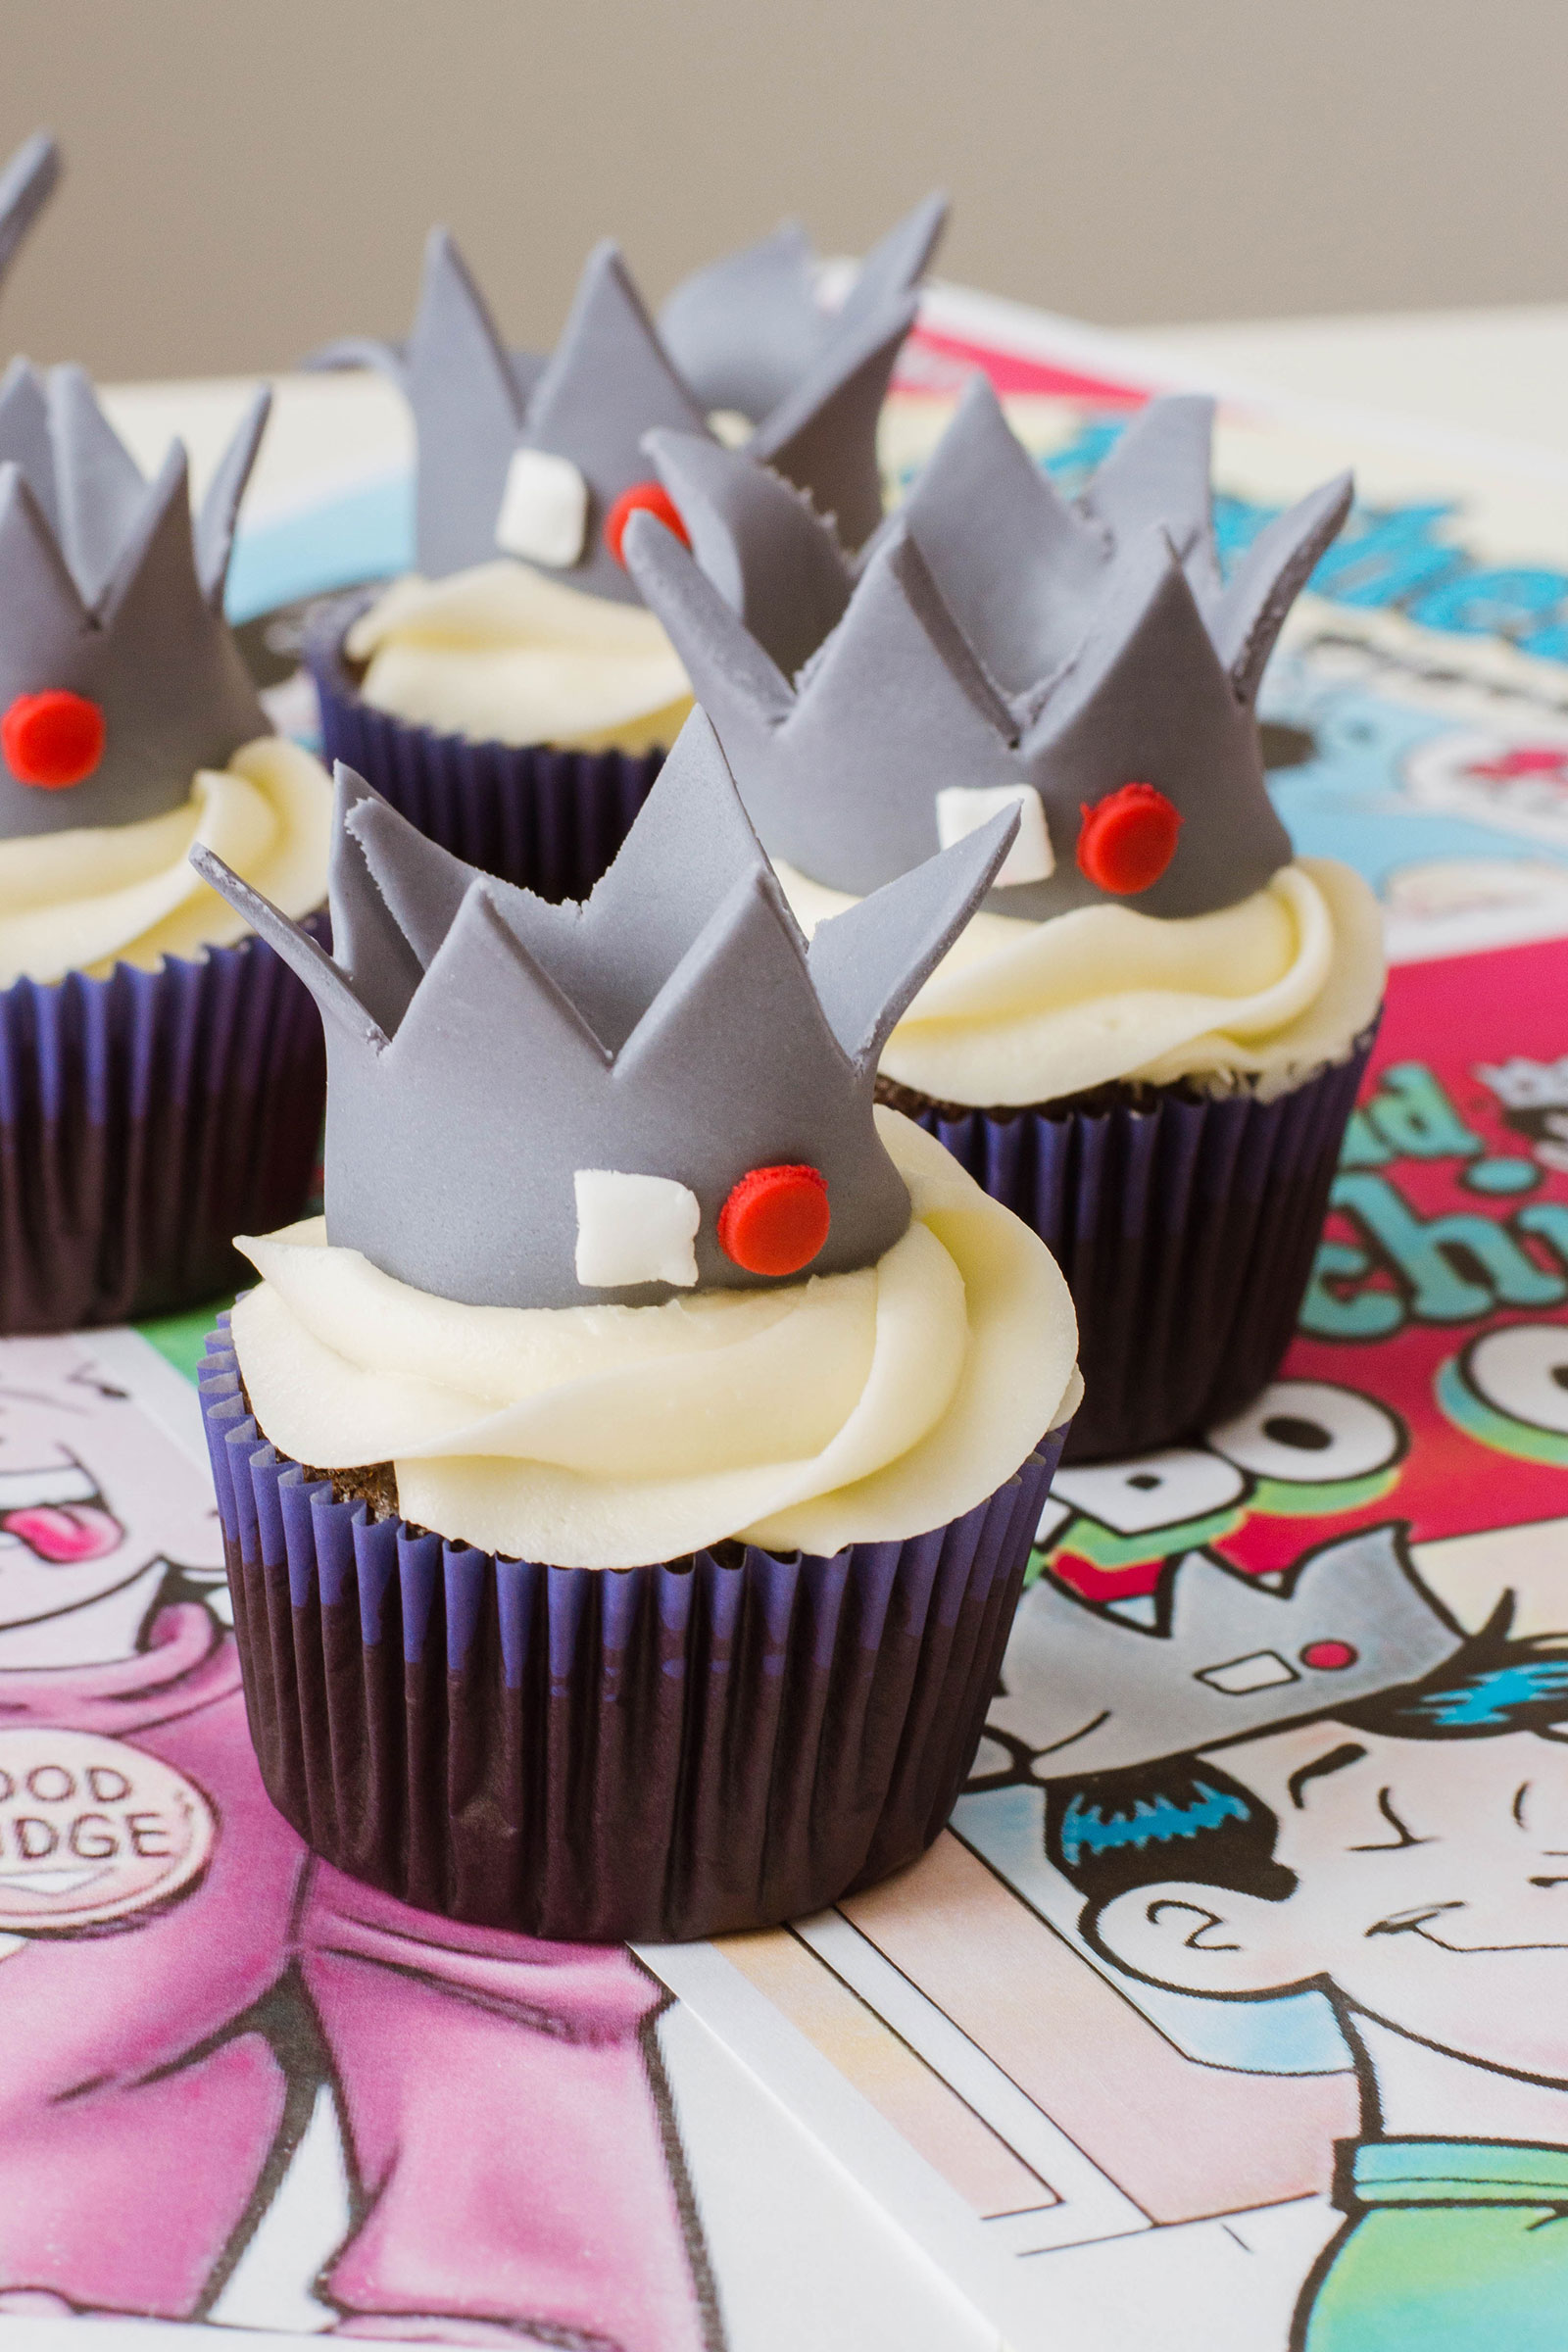 Riverdale-Inspired Recipe: Jughead Cupcakes